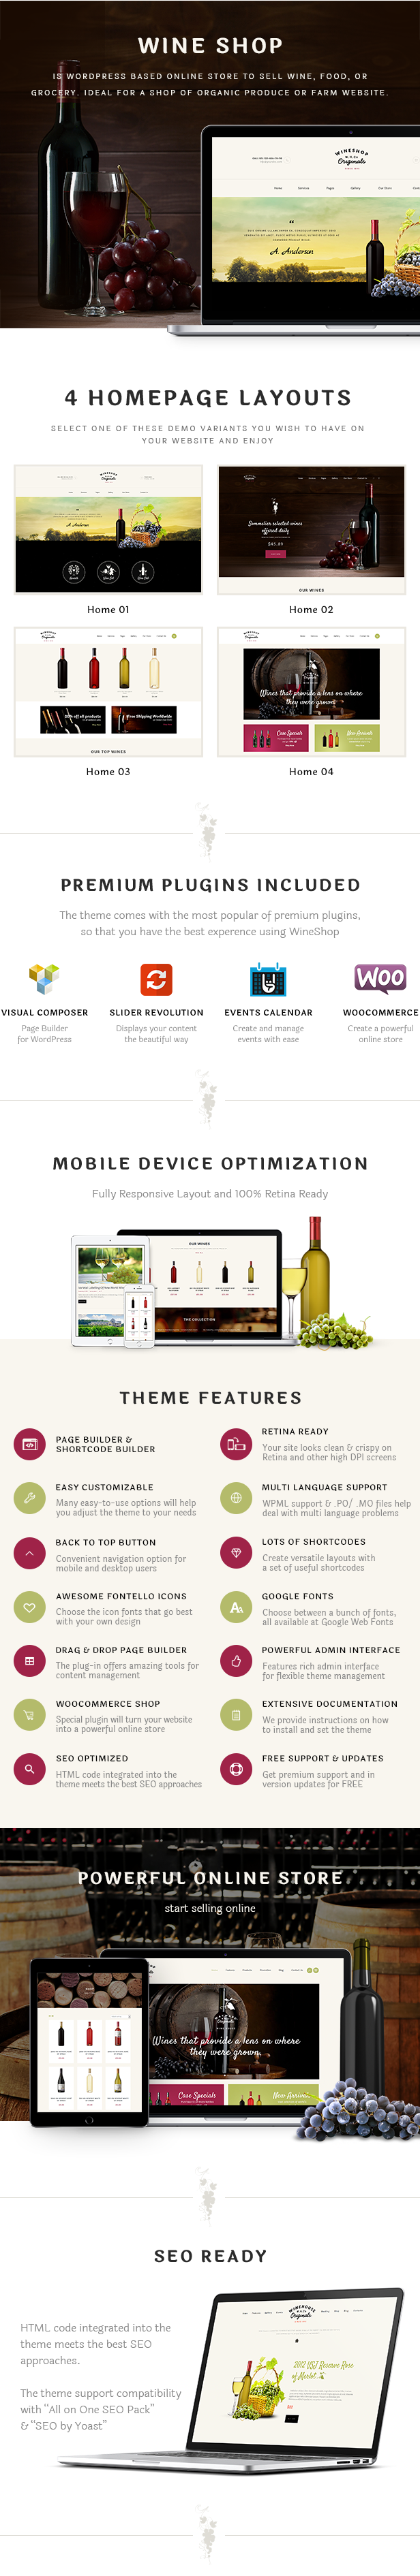 Food & Wine Online Store WordPress Theme features